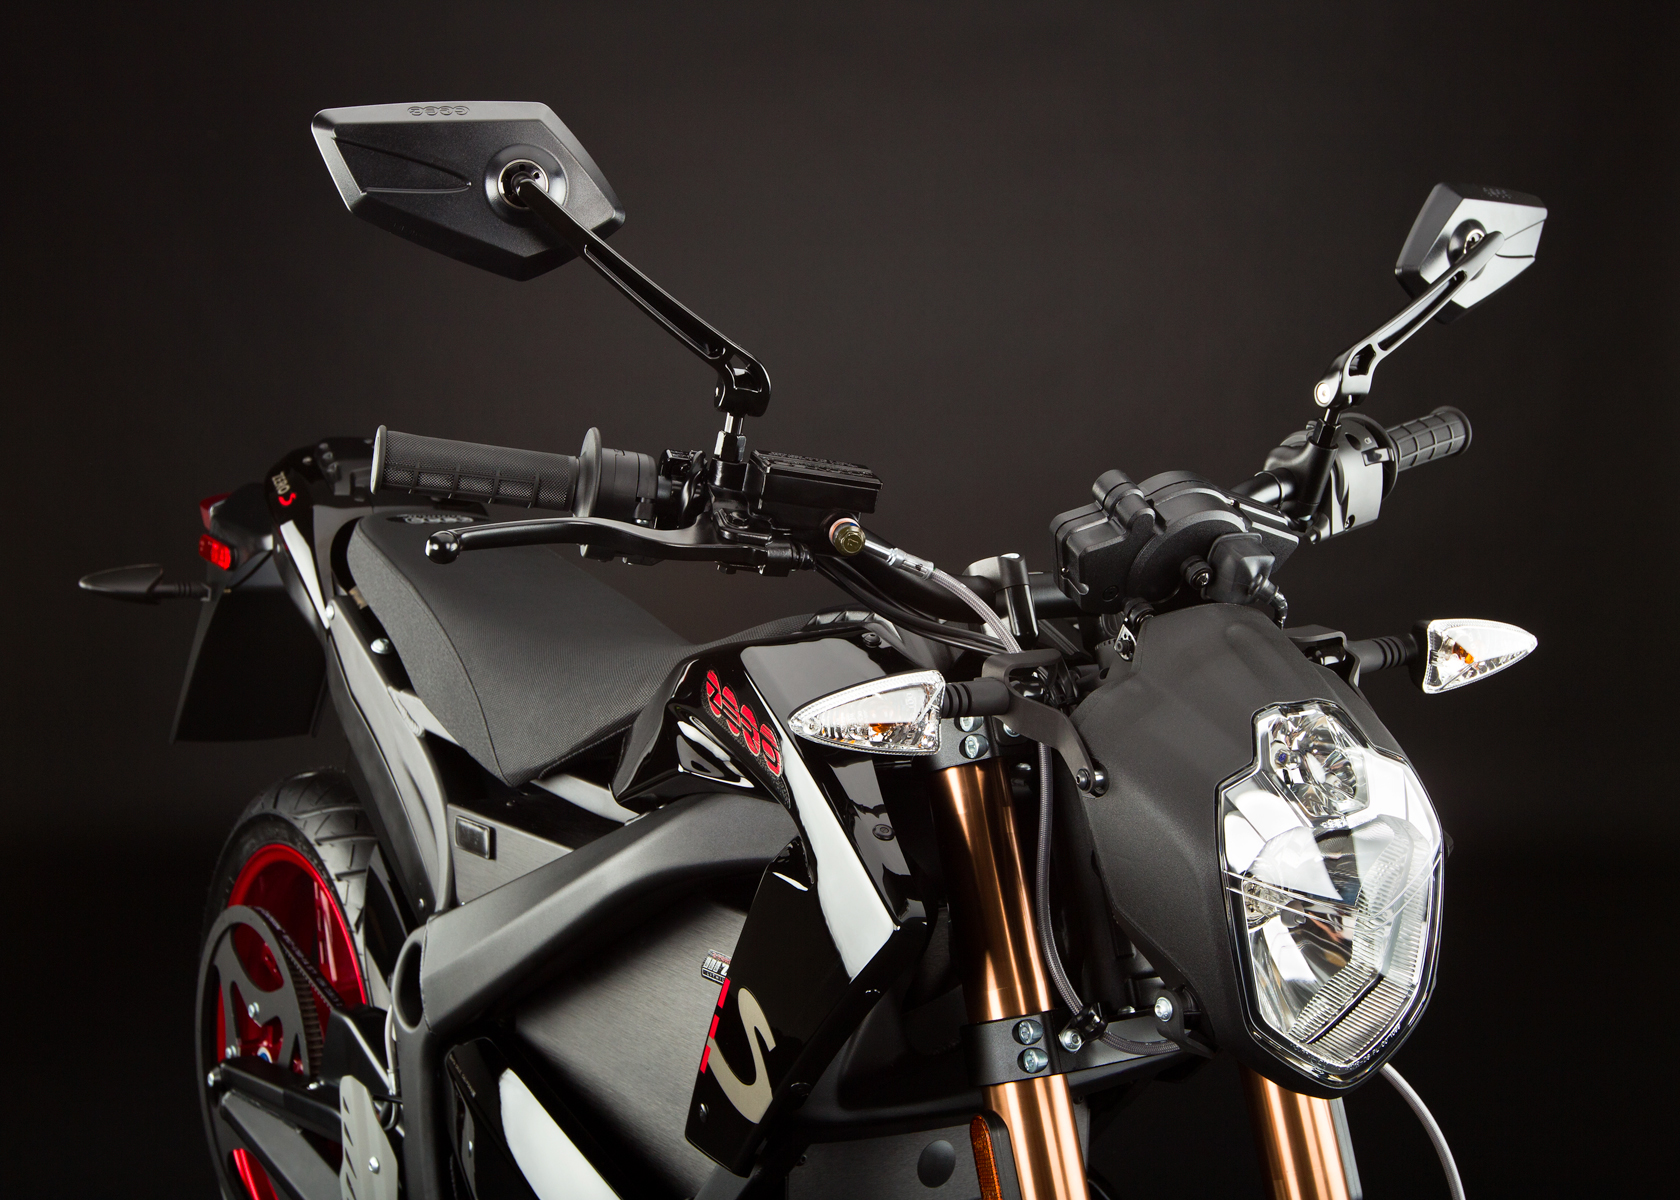 2012 Zero S Electric Motorcycle: Headlight